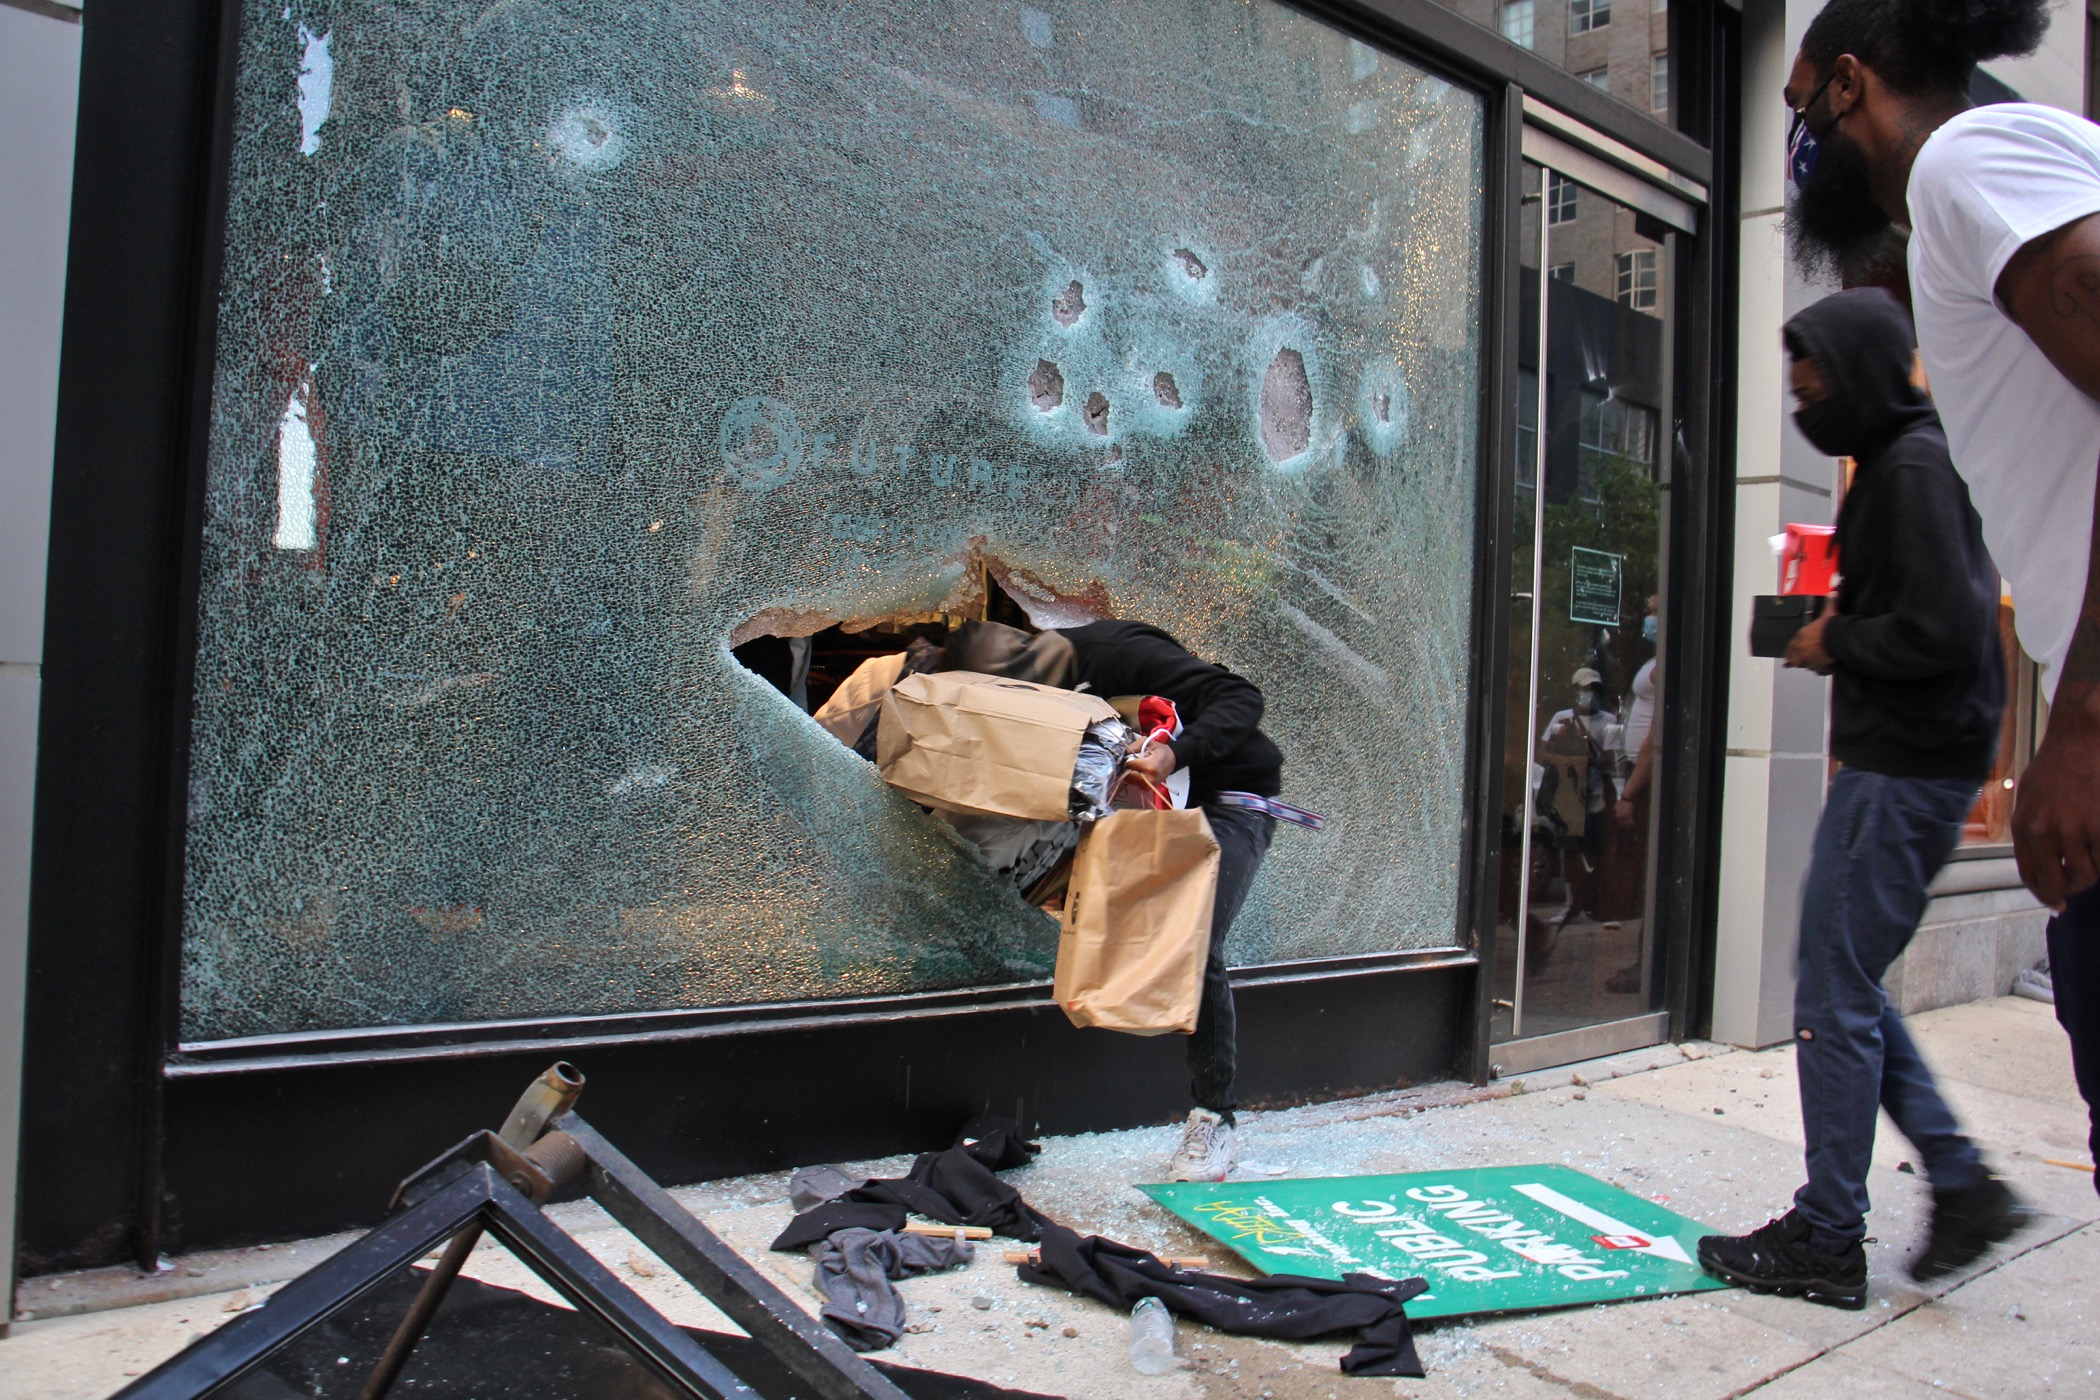 A looter emerges from the shattered window of a North Face store